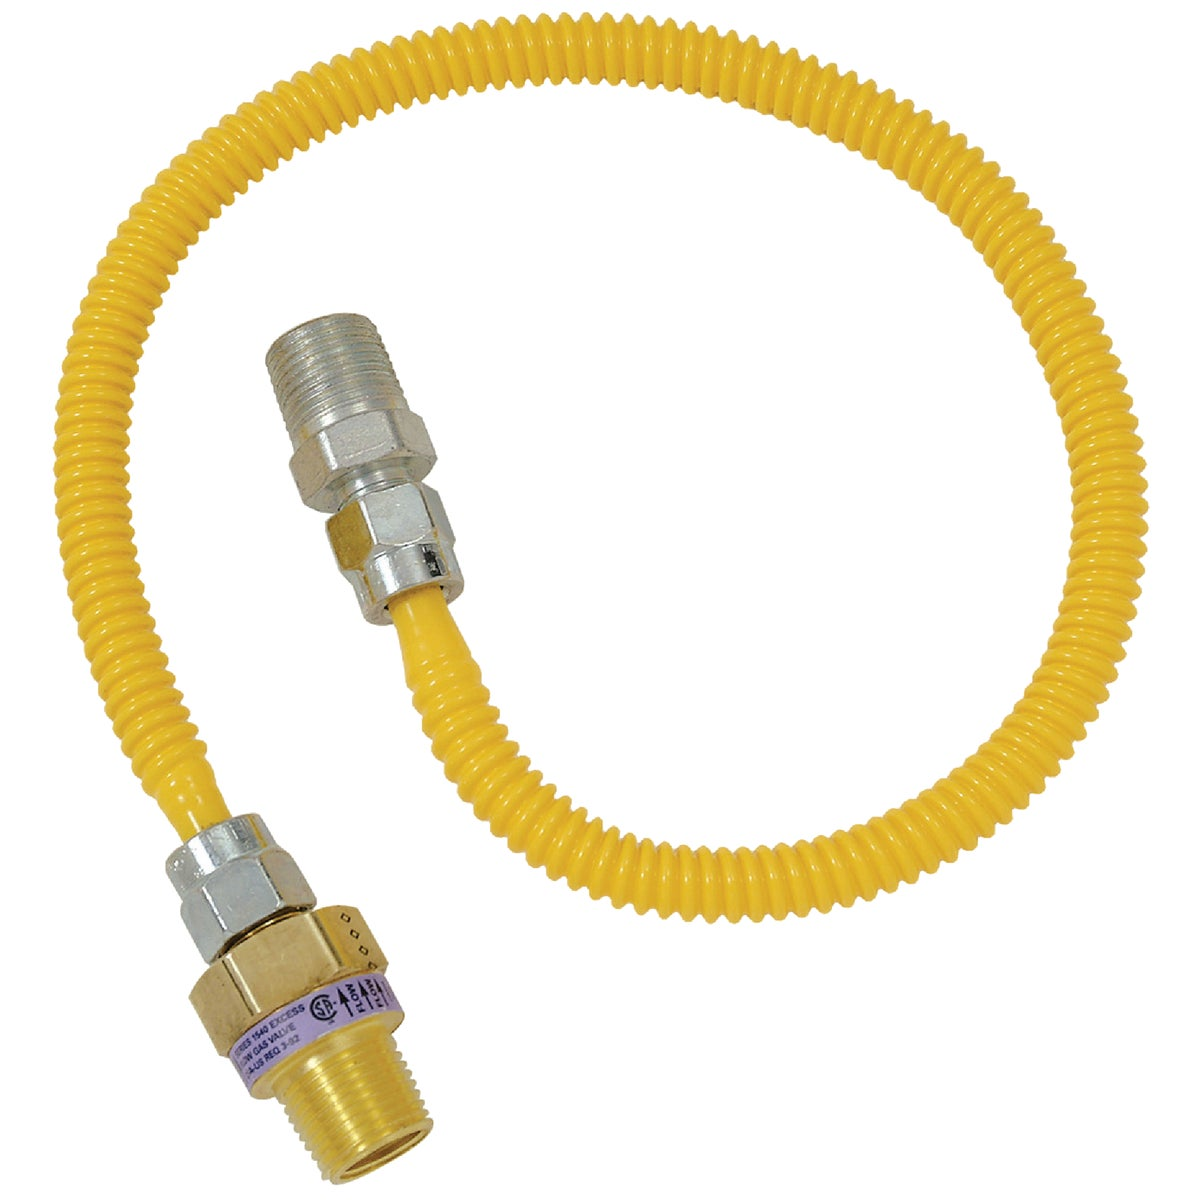 1/2X3/8-24 GAS CONNECTOR - CSSL44E-24P by Brass Craft